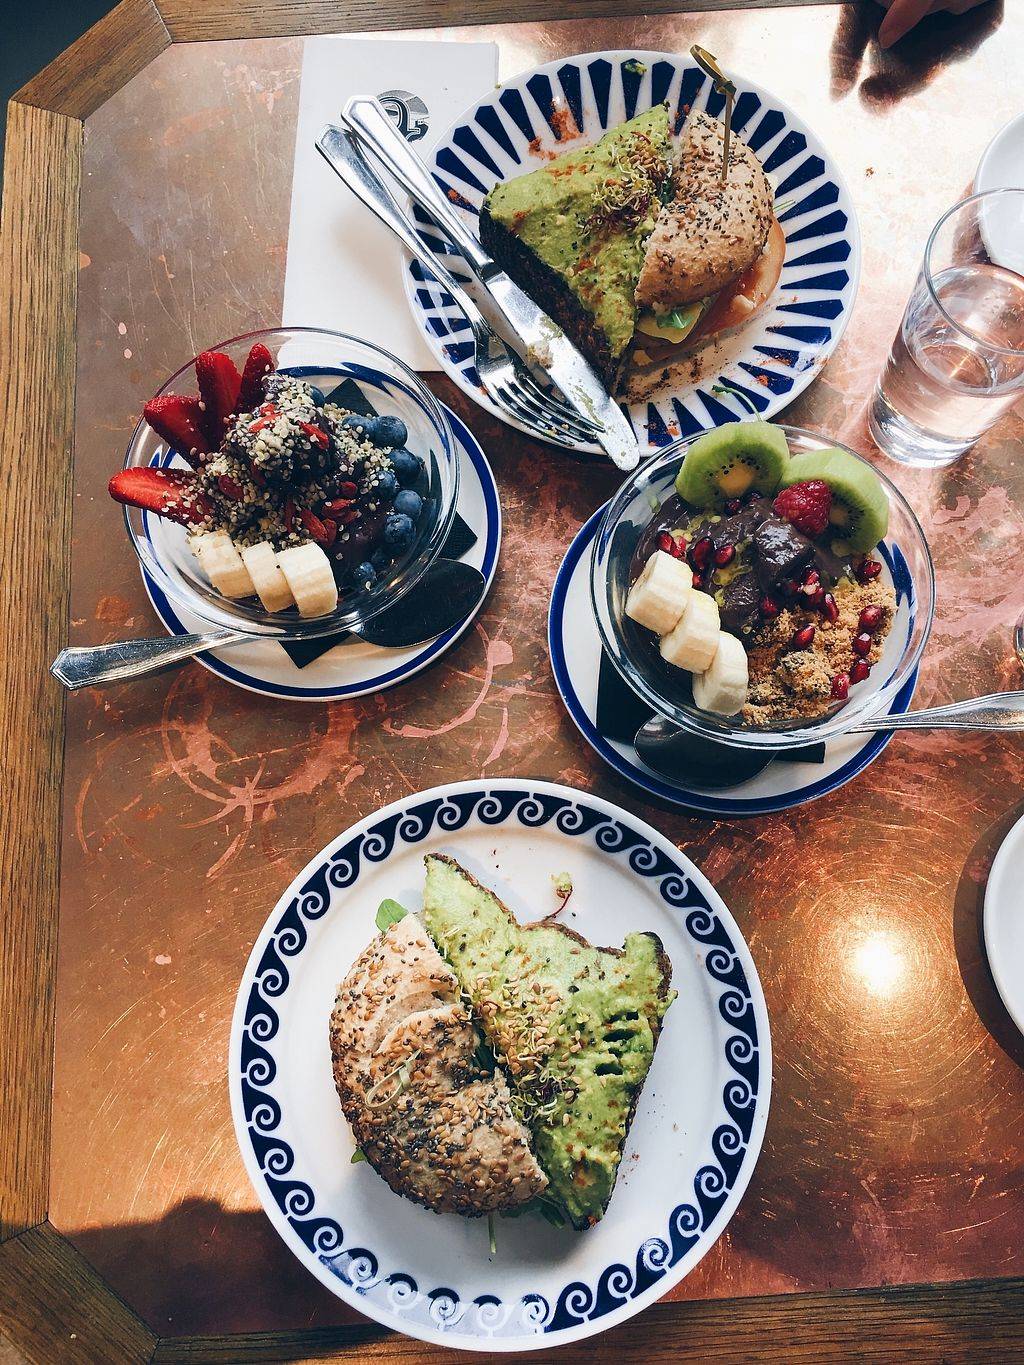 """Photo of Flax & Kale - Placa Castella  by <a href=""""/members/profile/Sara_Aurora"""">Sara_Aurora</a> <br/>Bagel with tempeh, avocado toast, acaitella bowl and a very happy tummy <br/> August 13, 2017  - <a href='/contact/abuse/image/53077/292416'>Report</a>"""